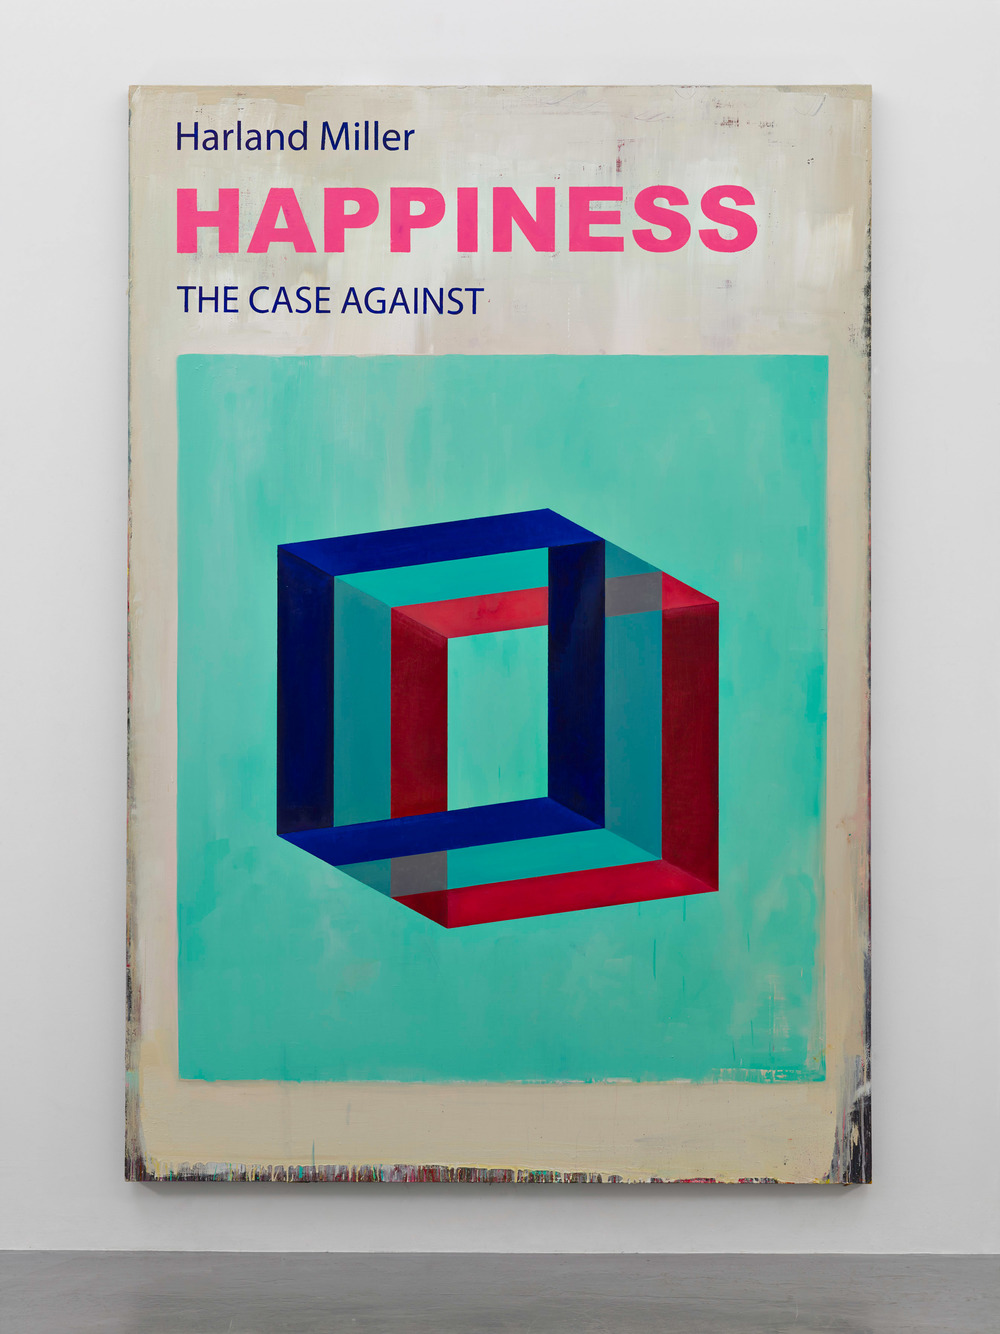 Harland Miller, Happiness The Case Against, 2016, Courtesy the artist and BlainSouthern, Photo Peter Mallet